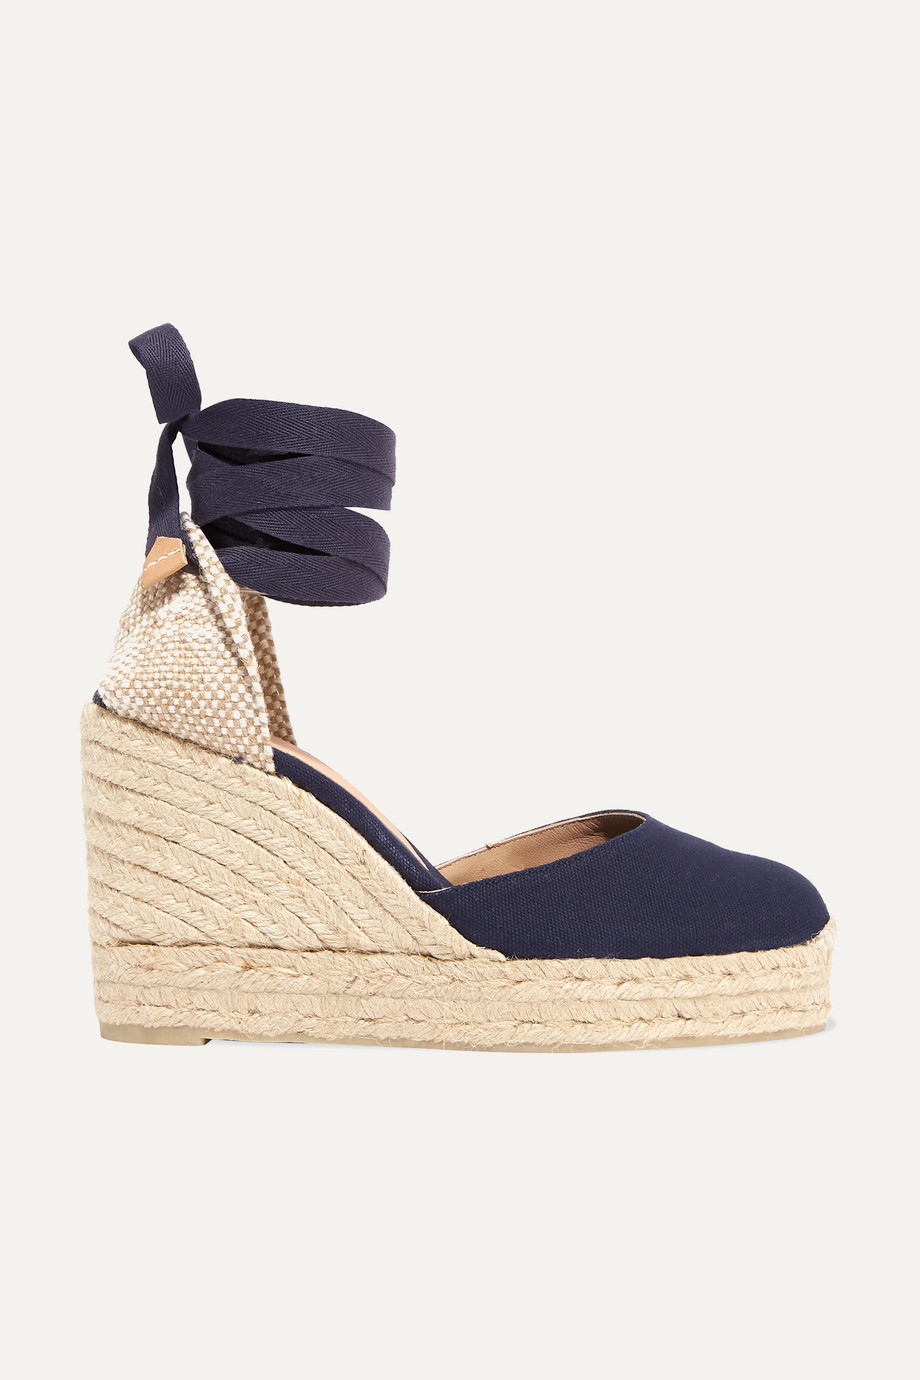 Castañer Carina 100 canvas wedge espadrilles